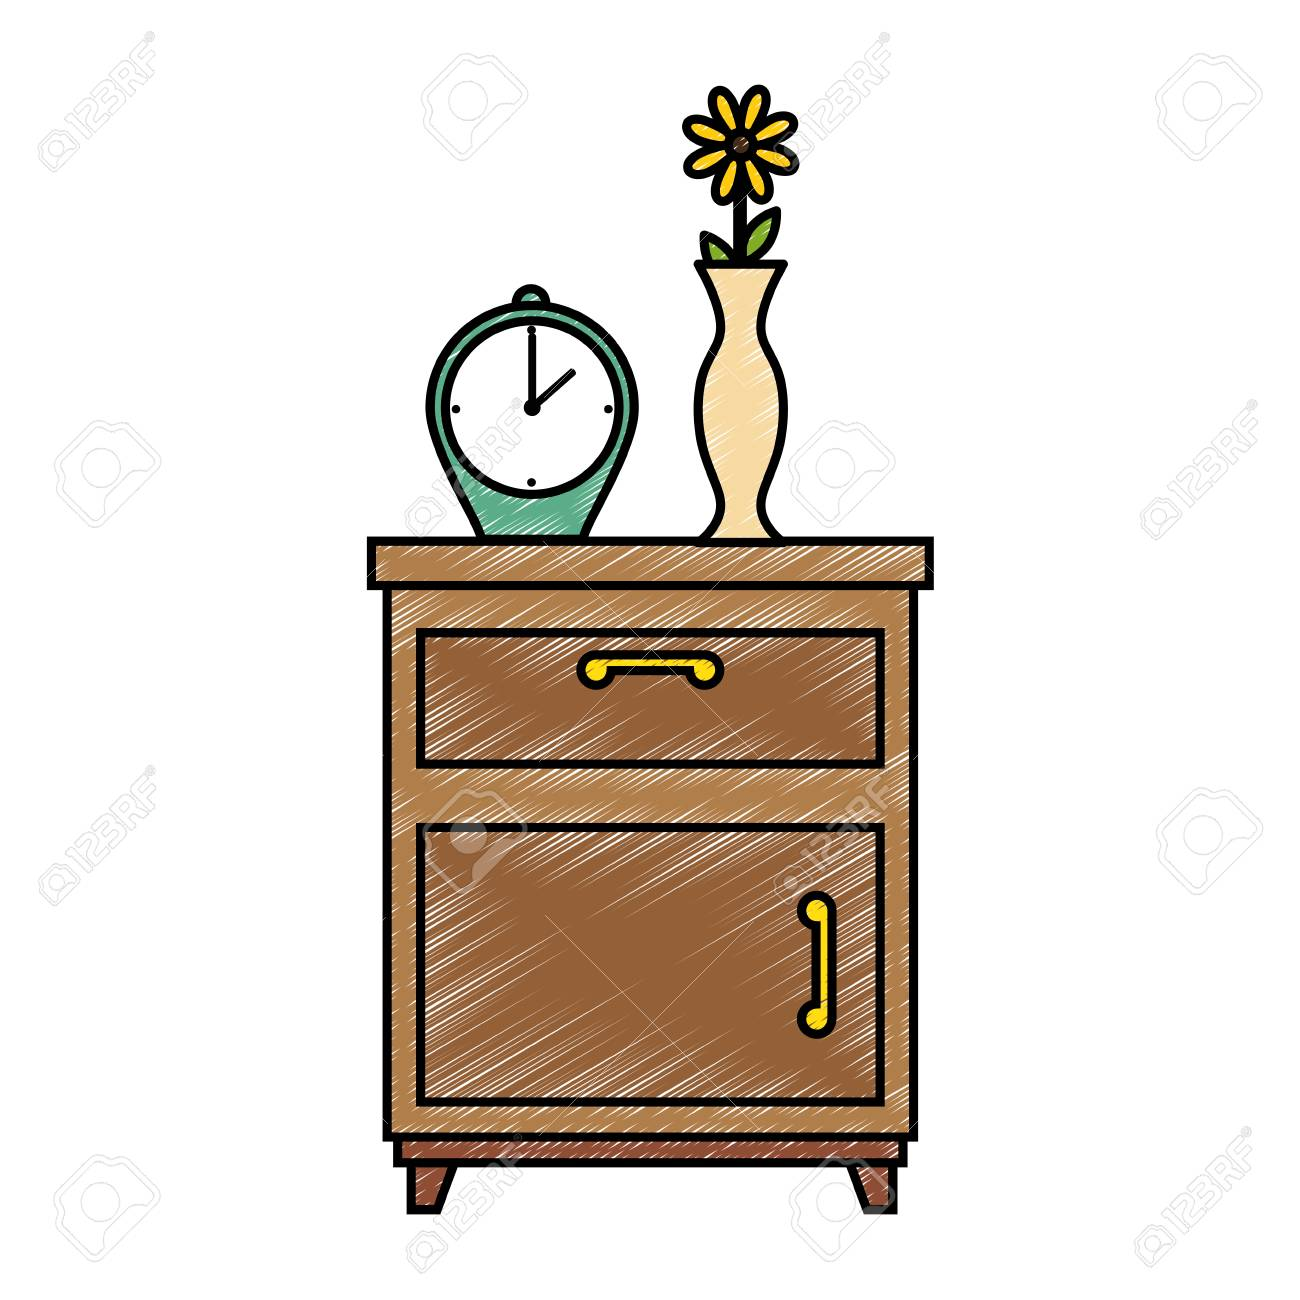 nightstand bedroom with alarm clock vector illustration design